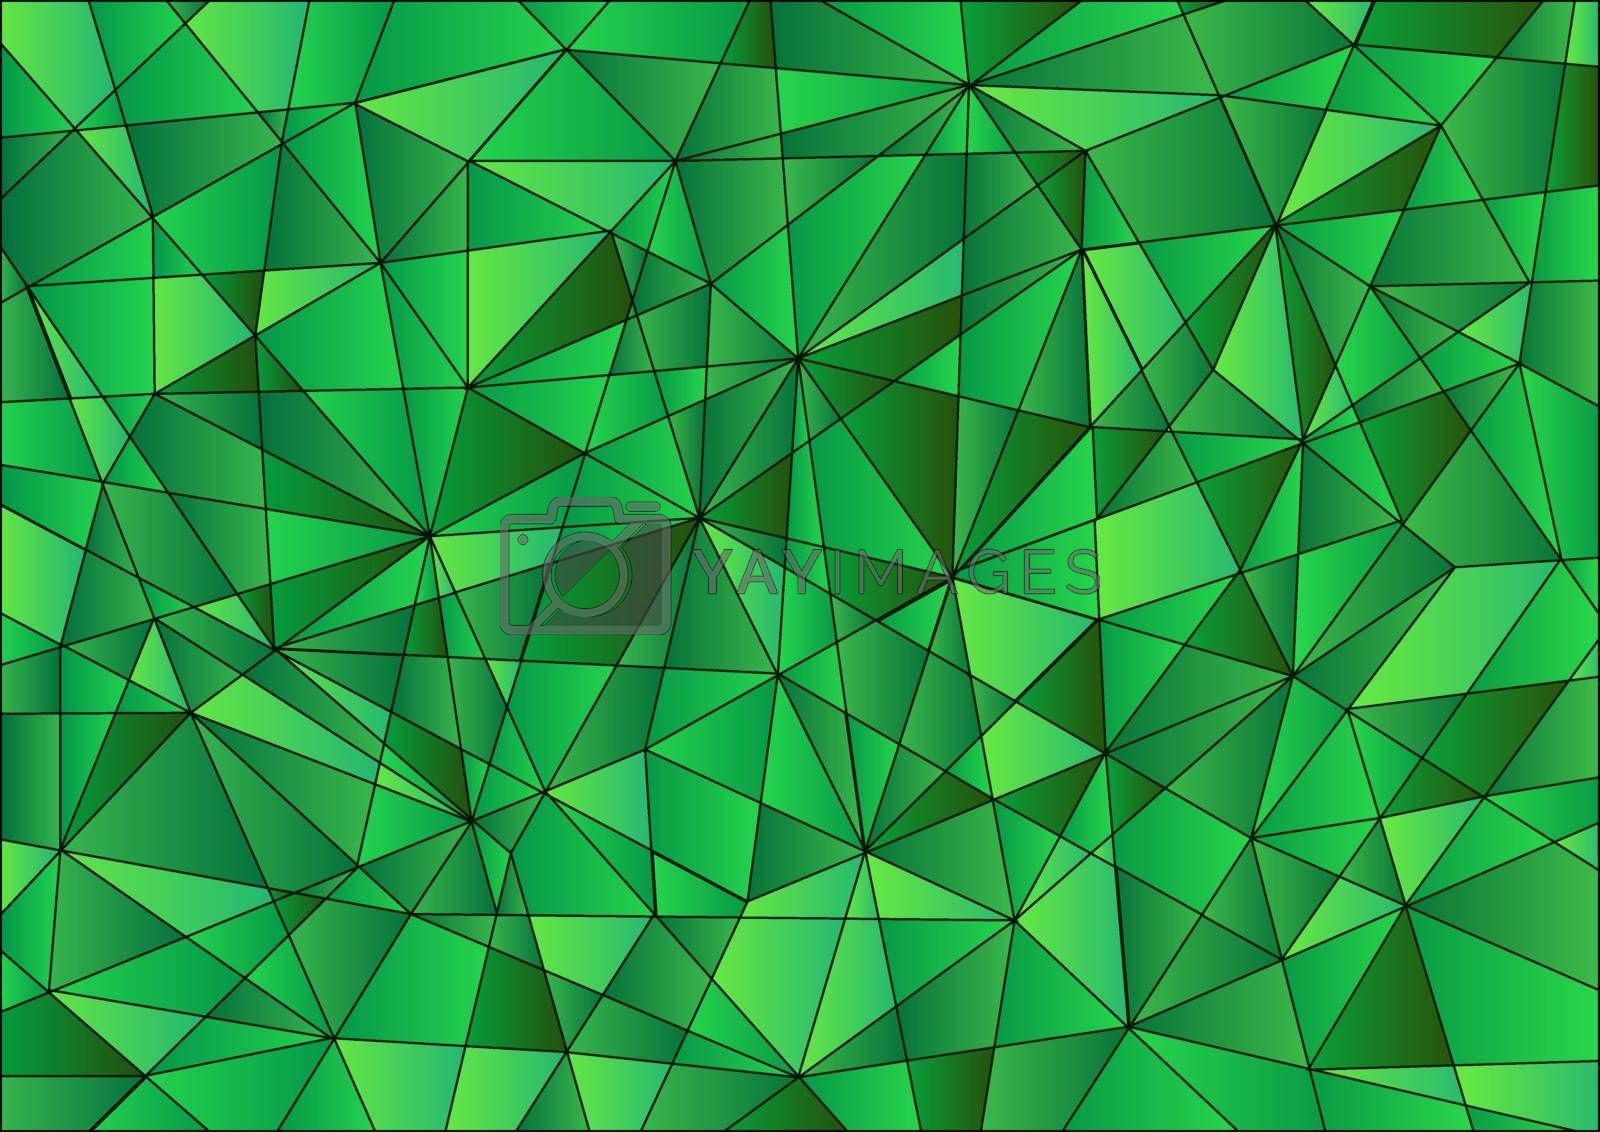 Abstract geometric pattern is composed of triangles of different sizes in green